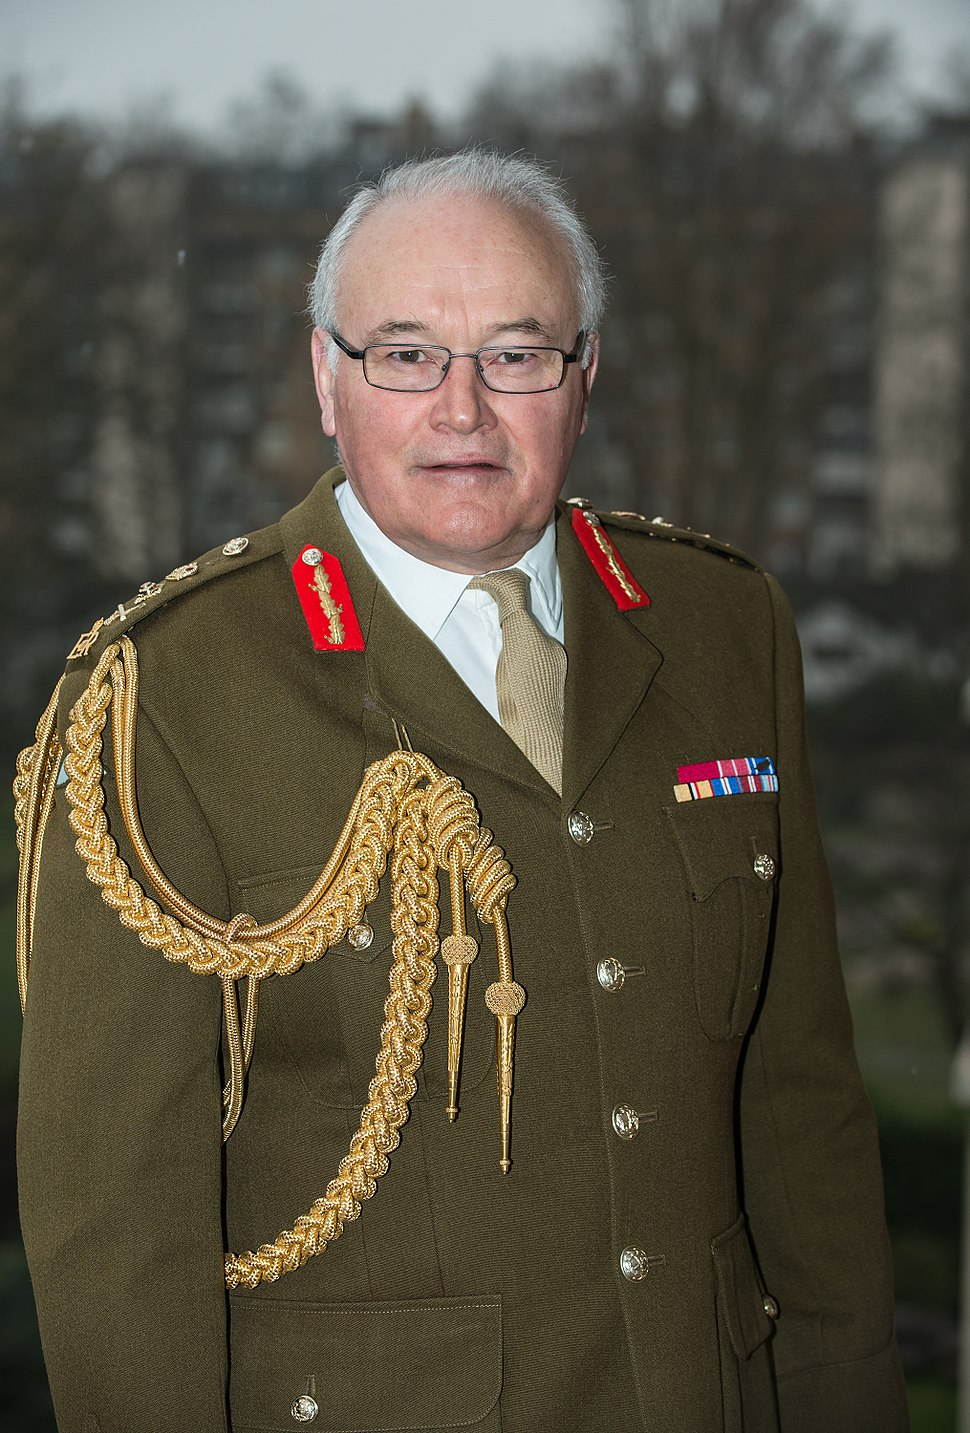 General Sir Peter Wall, Chief of the General Staff